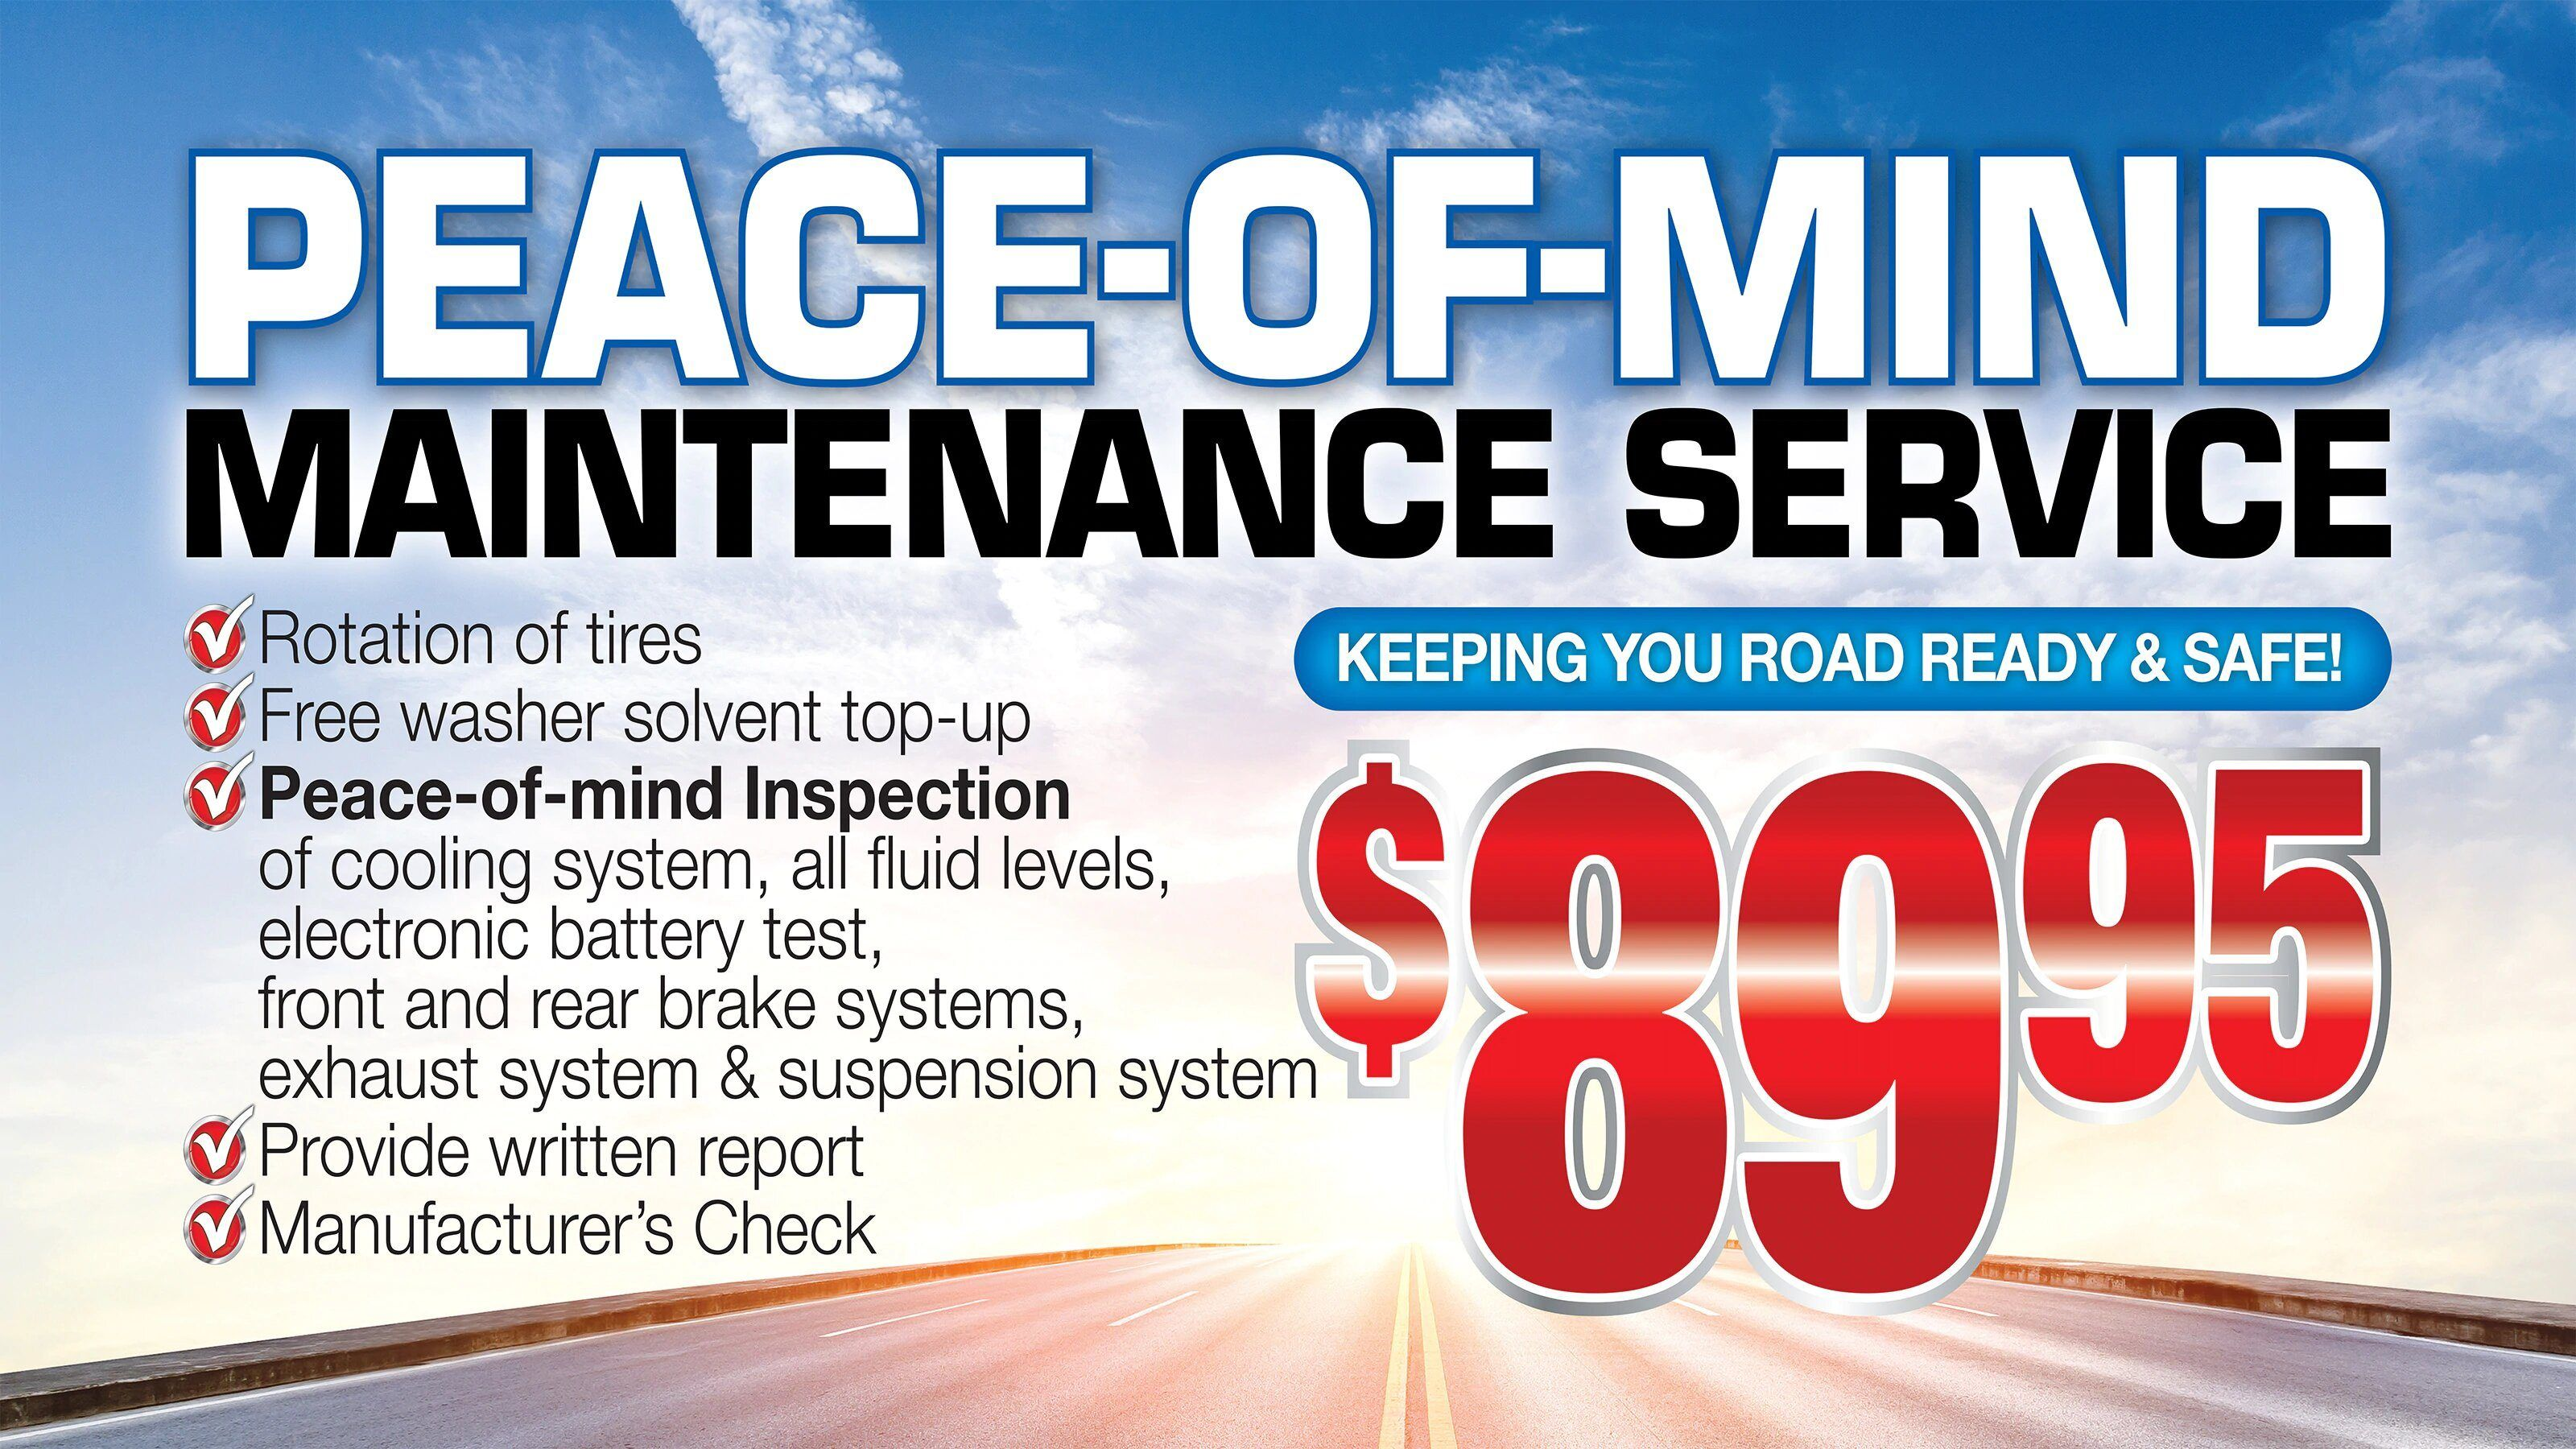 Peace of mind service specials for $89.95